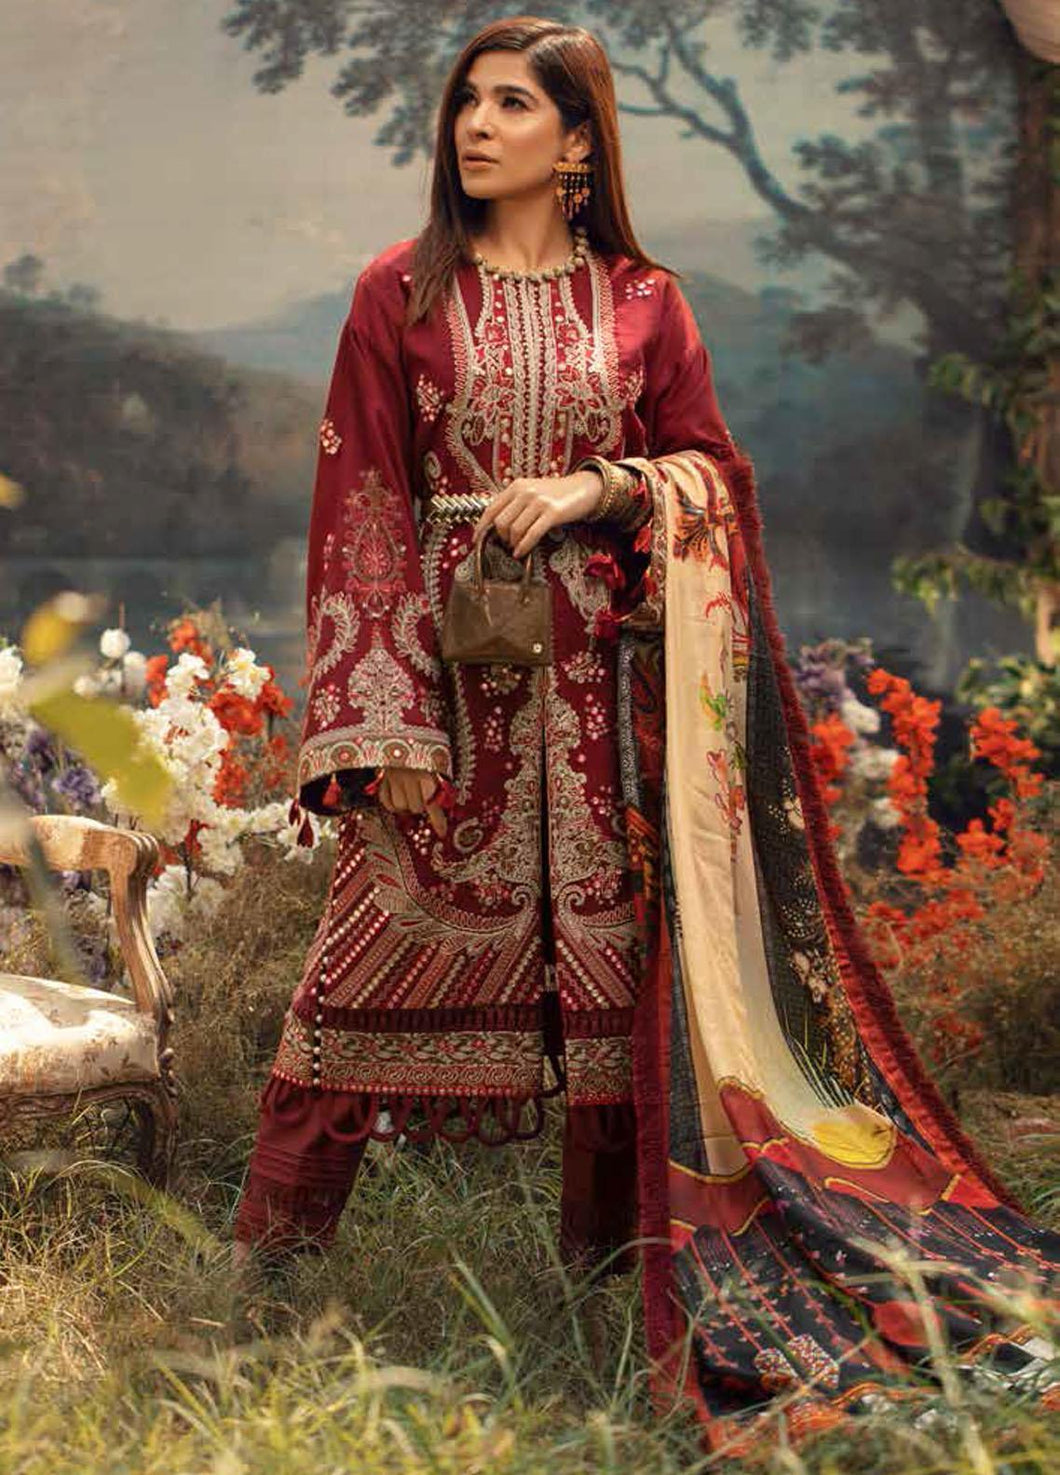 MARYAM HUSSAIN Winter Shawl Collection 2020-Fauna D04 most popular Pakistani outfits for evening wear and winter season in the UK, USA and France. These 3 pc unstitched, stitched & READY MADE Indian & Pakistani Suits are made from LAWN khaddar. Shop Designer Salwar Kameez by Maryam Hussain on SALE price at Lebaasonline